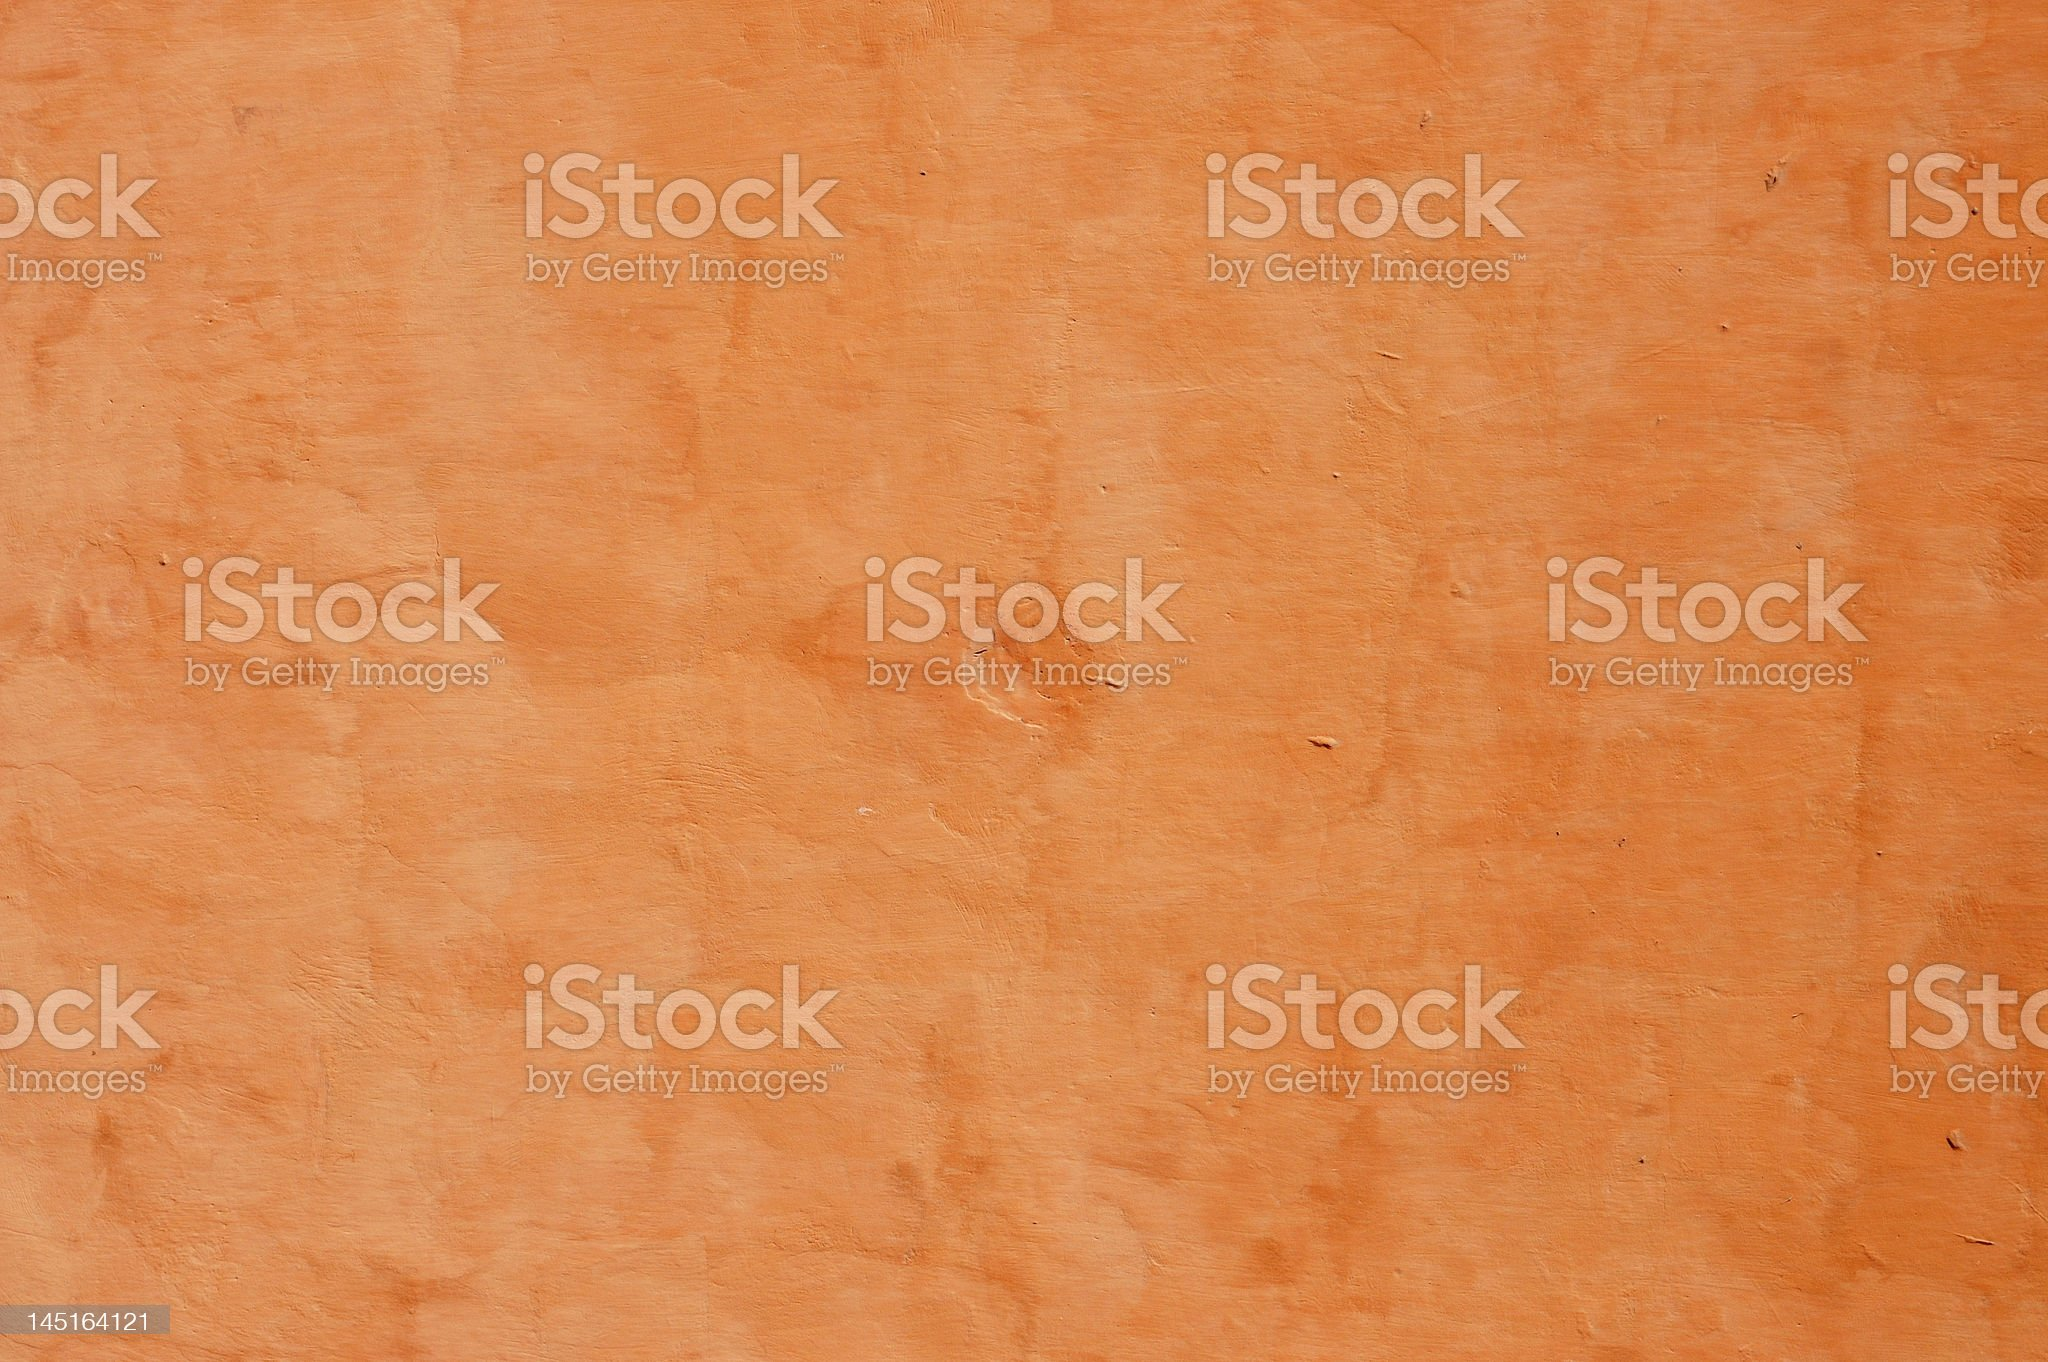 Moroccan Wall Texture Background royalty-free stock photo